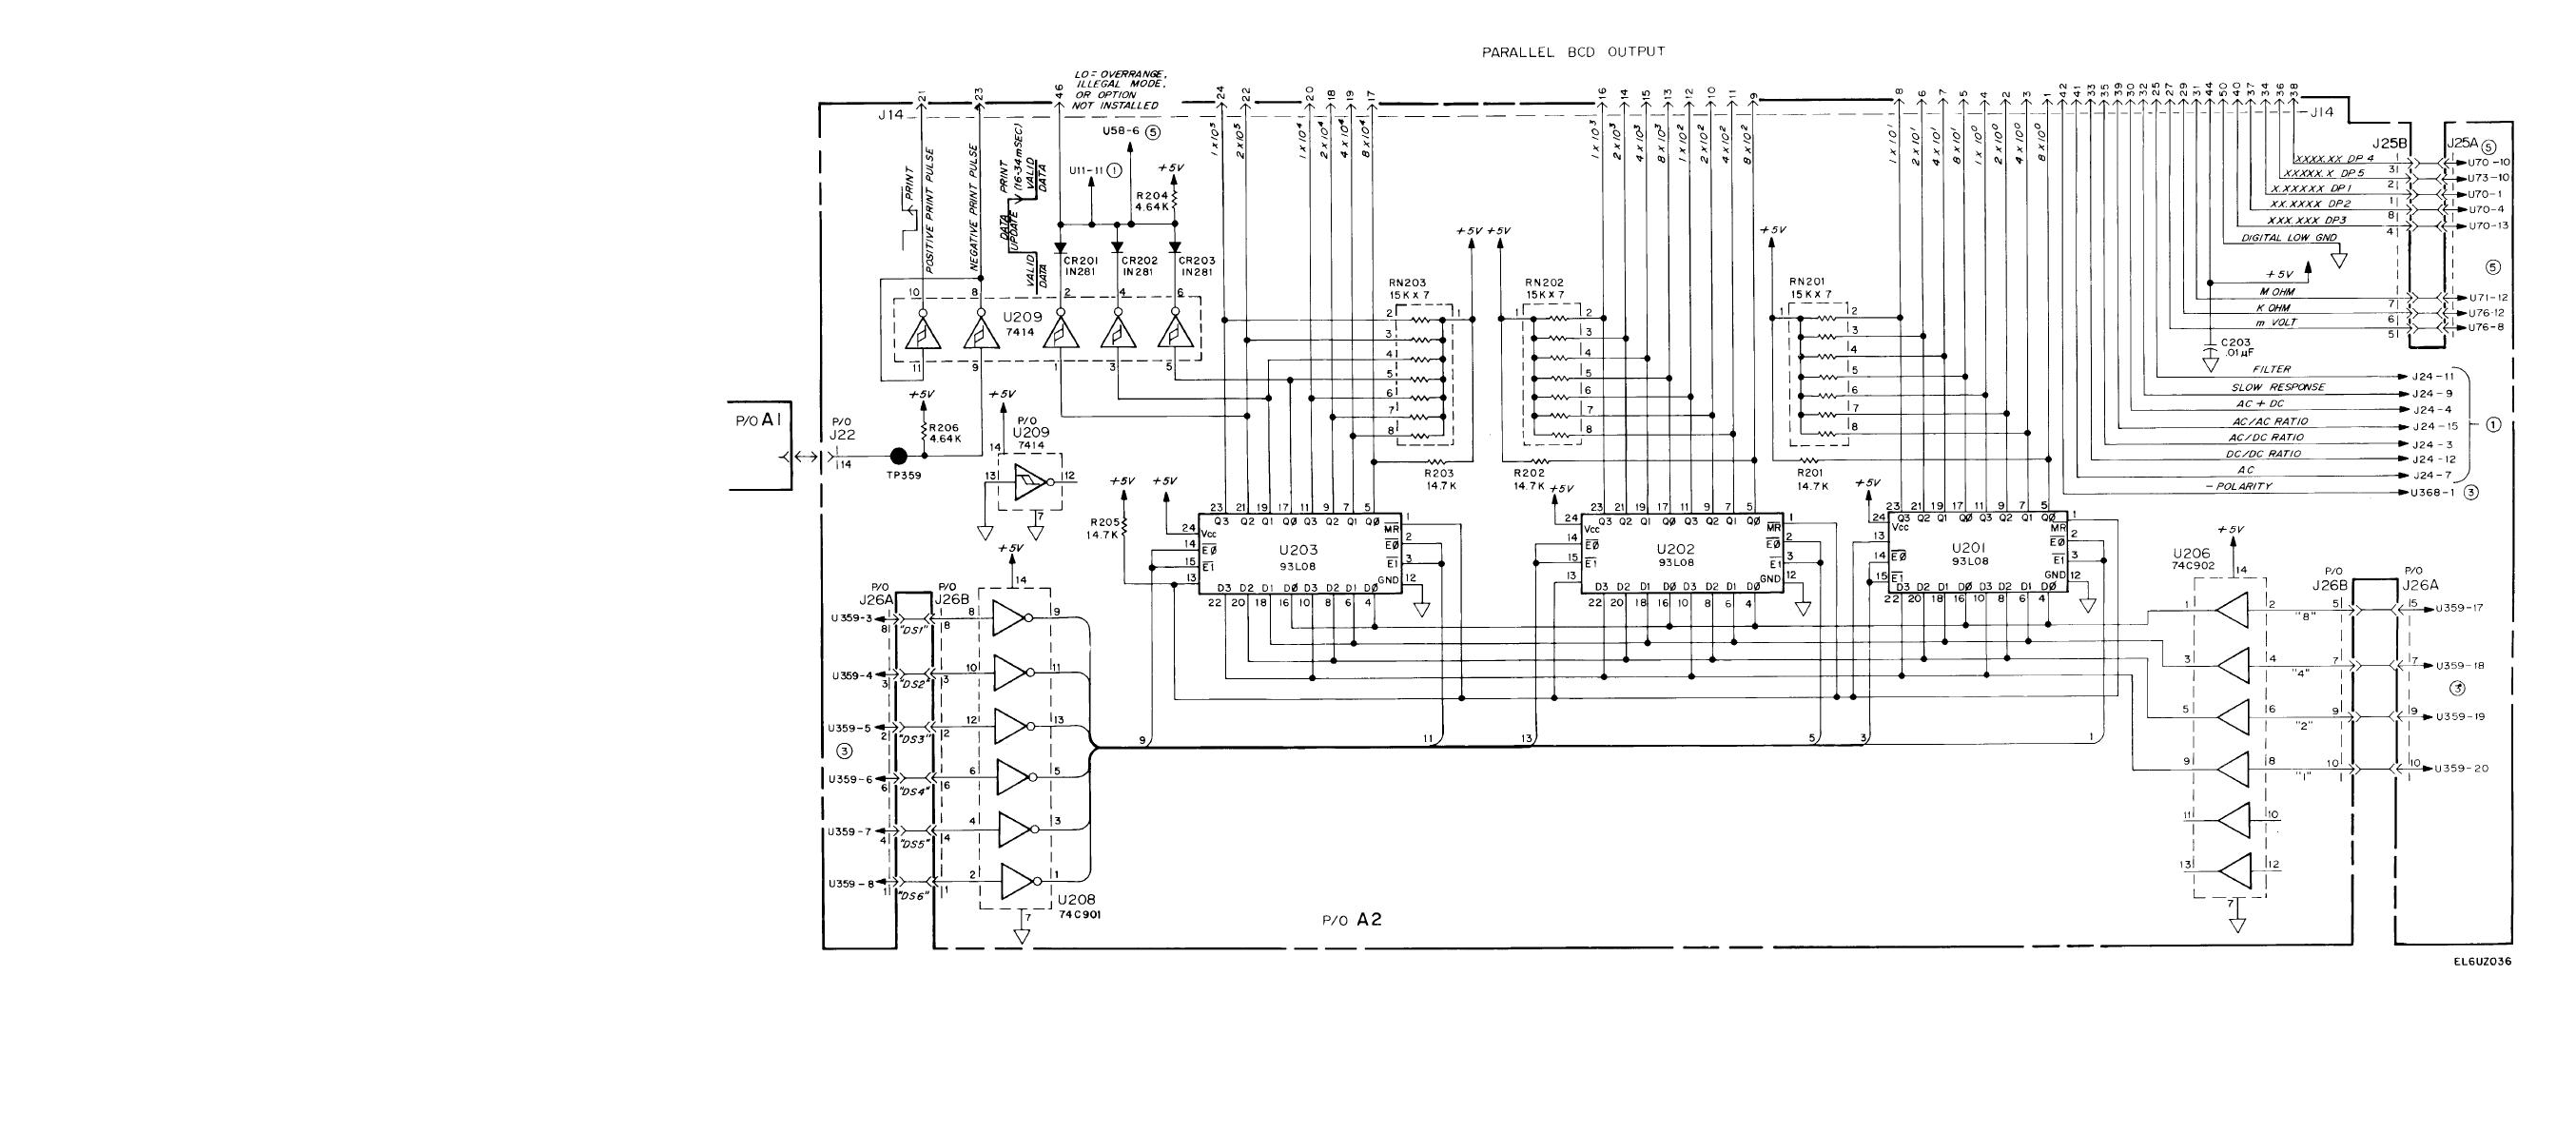 Figure fo 10 parallel bcd output a2 schematic diagram parallel bcd output a2 schematic diagram pooptronica